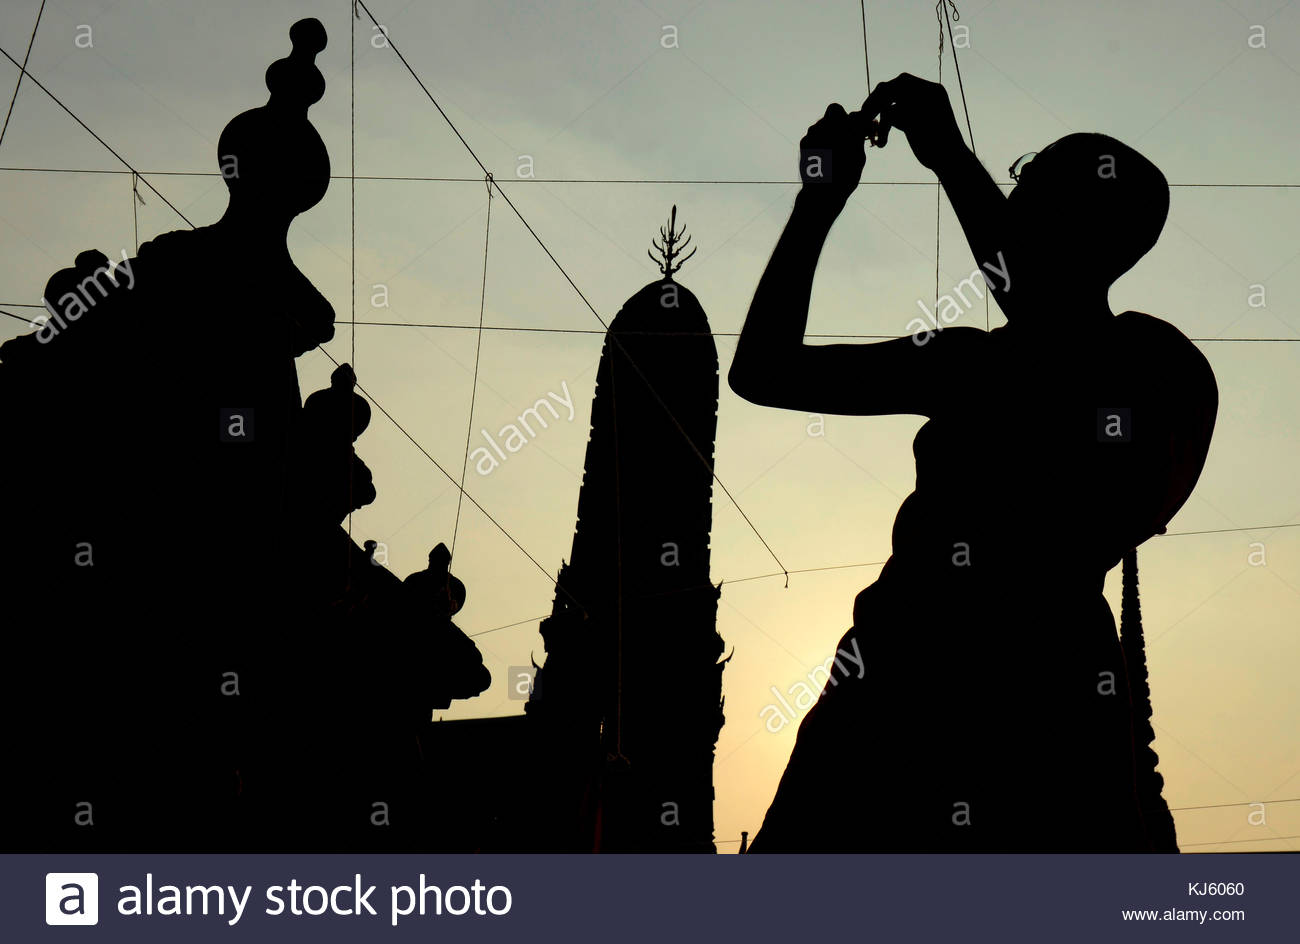 Silhouette of a monk working in the temple - Stock Image